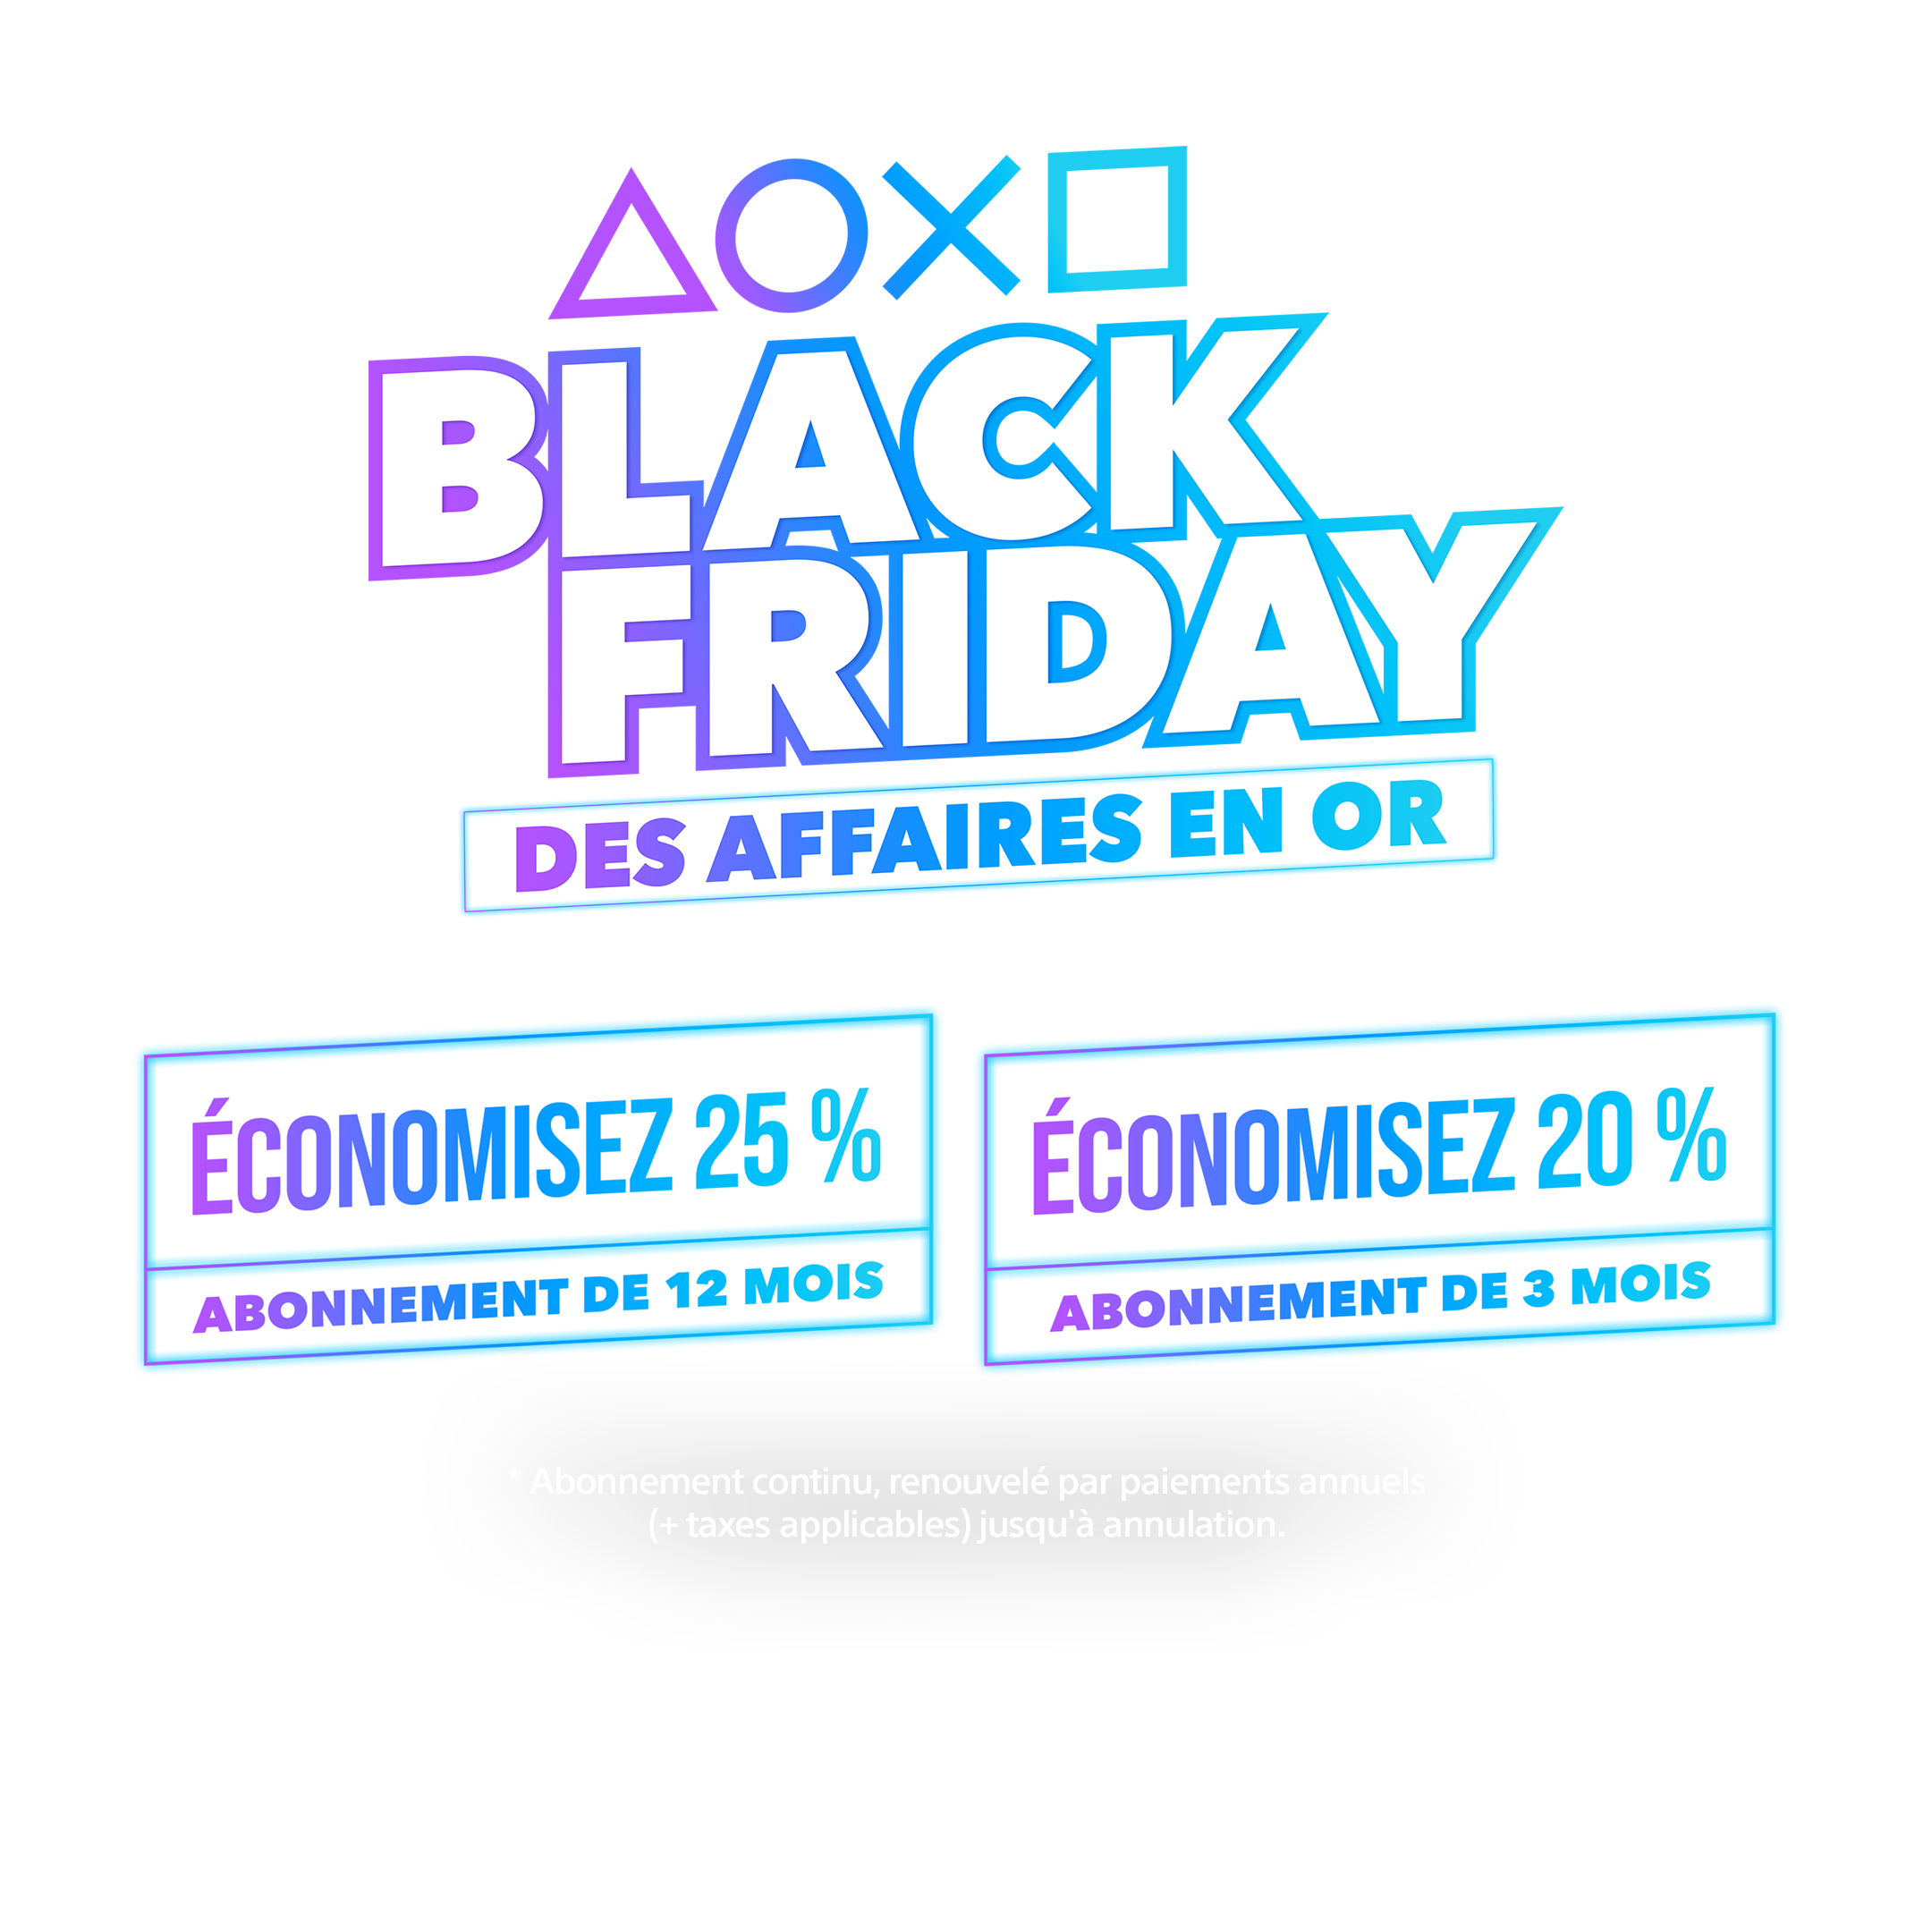 PS Now Black Friday 2020 SIEA Web-Mobile Character BG